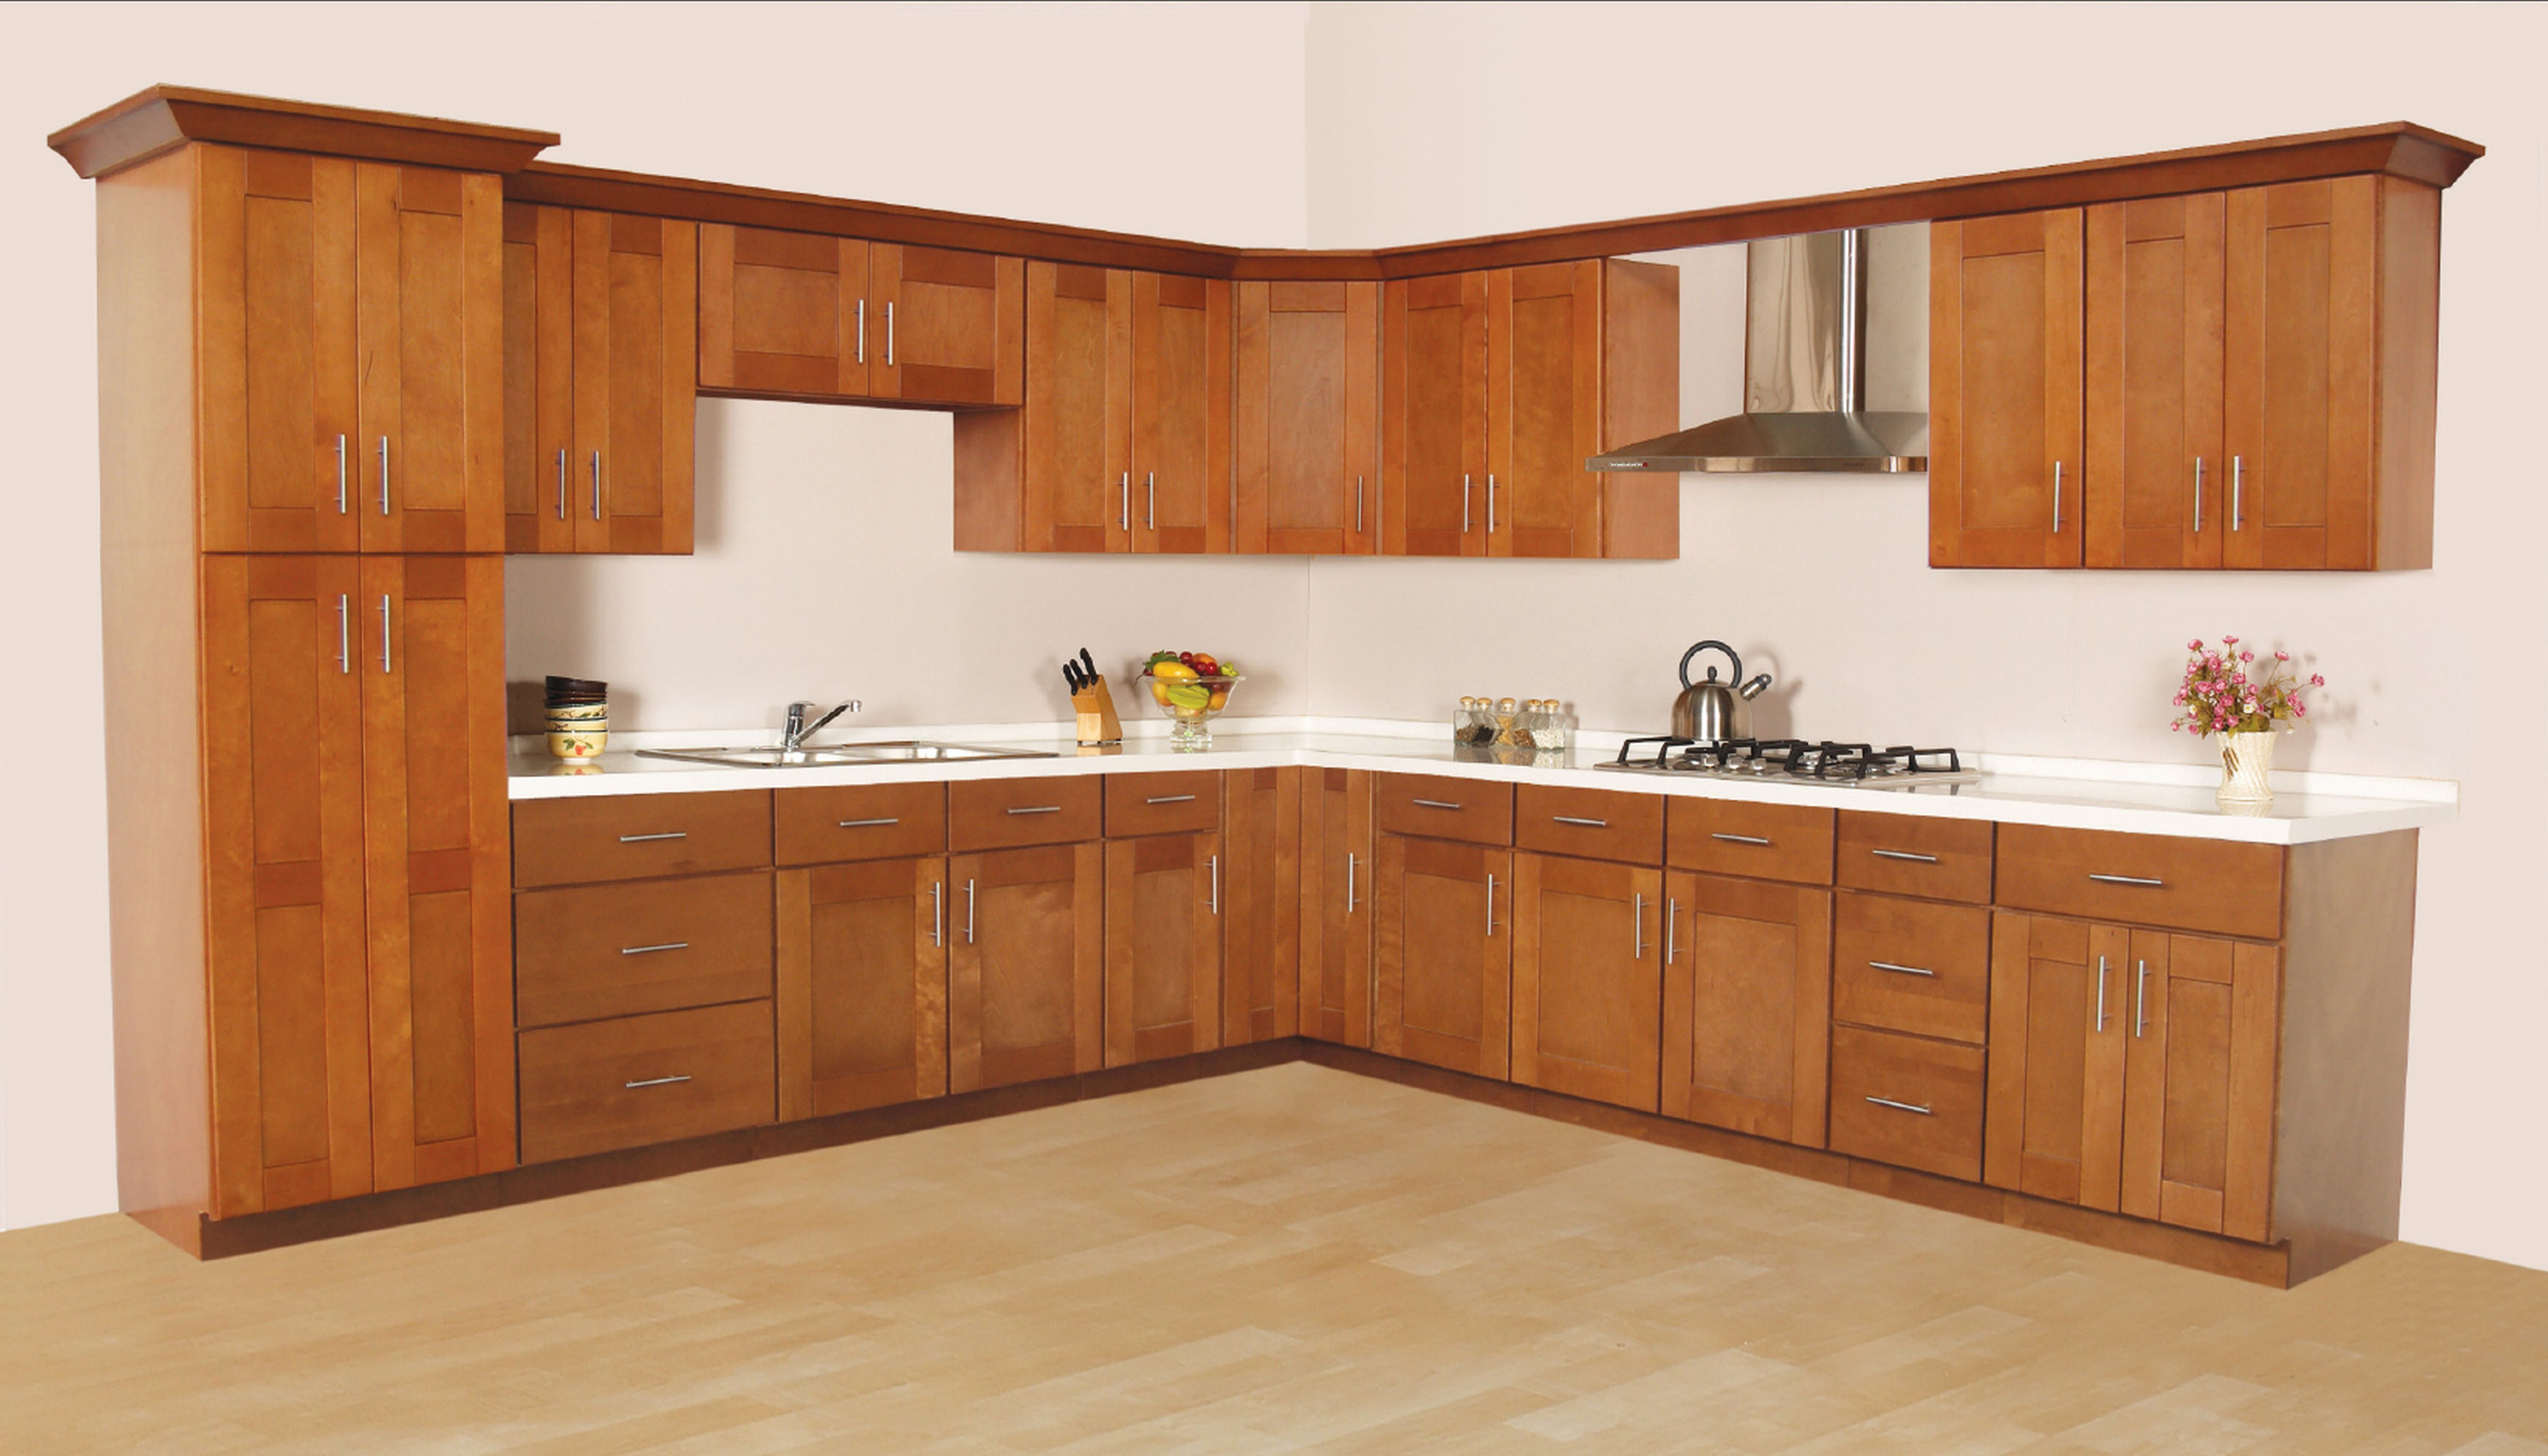 Simple Kitchen Interior with Wooden Cabinets Completed with White Countertop